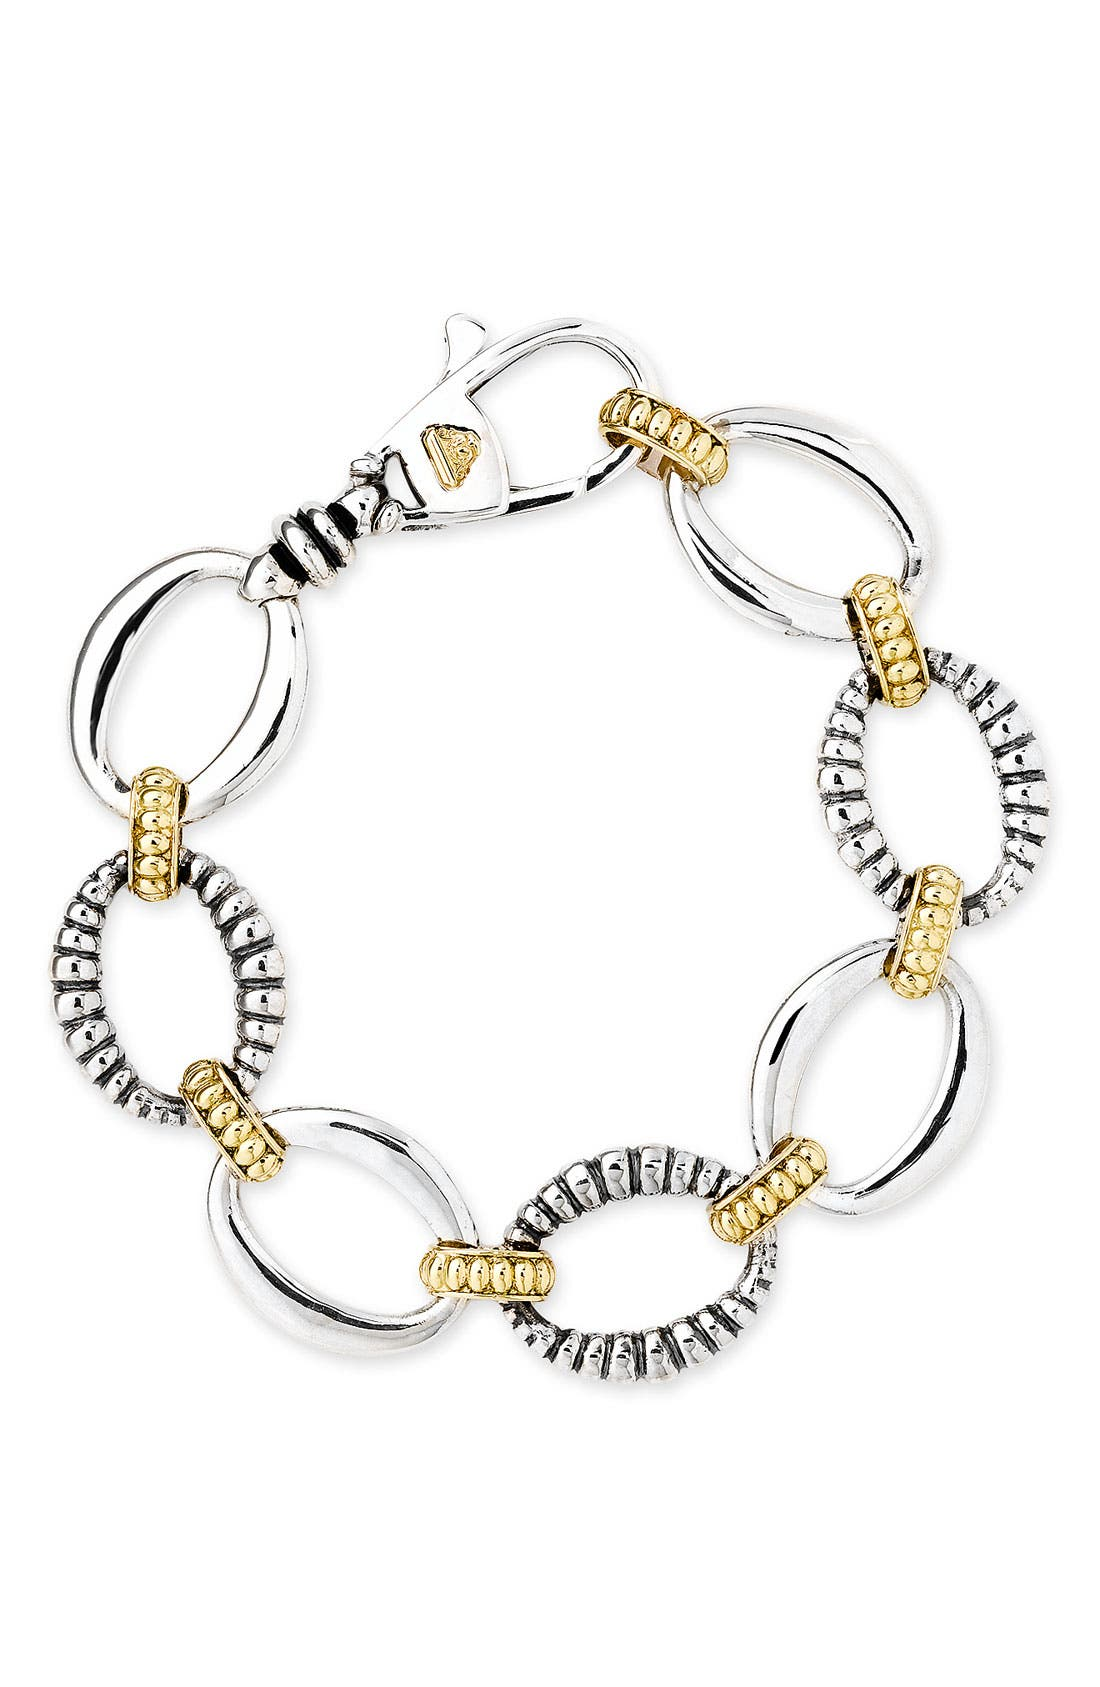 'Link' 2-Tone Bracelet,                             Main thumbnail 1, color,                             Sterling Silver/ Gold